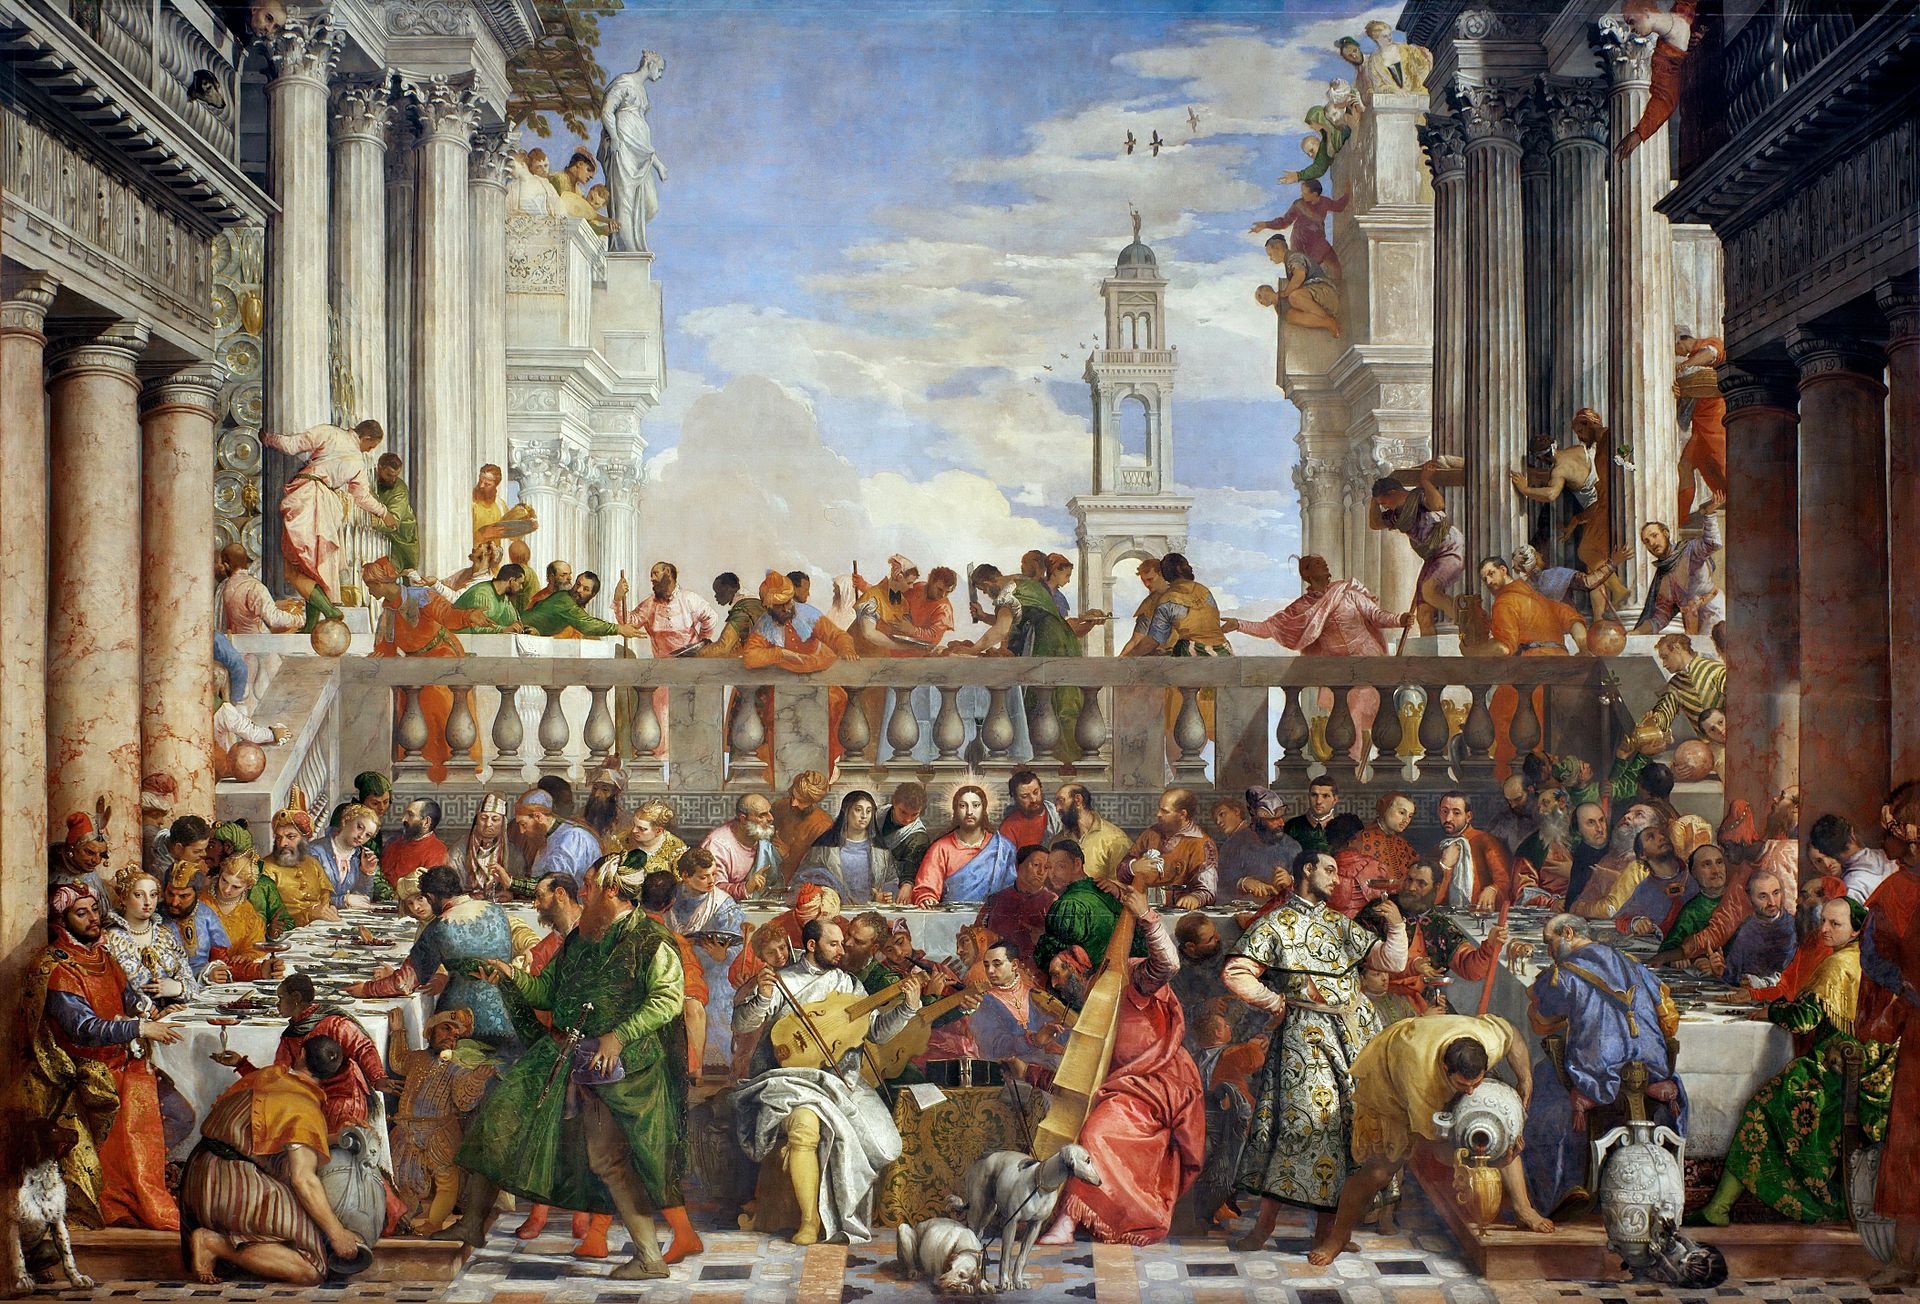 The Celebration at Cana by Veronese